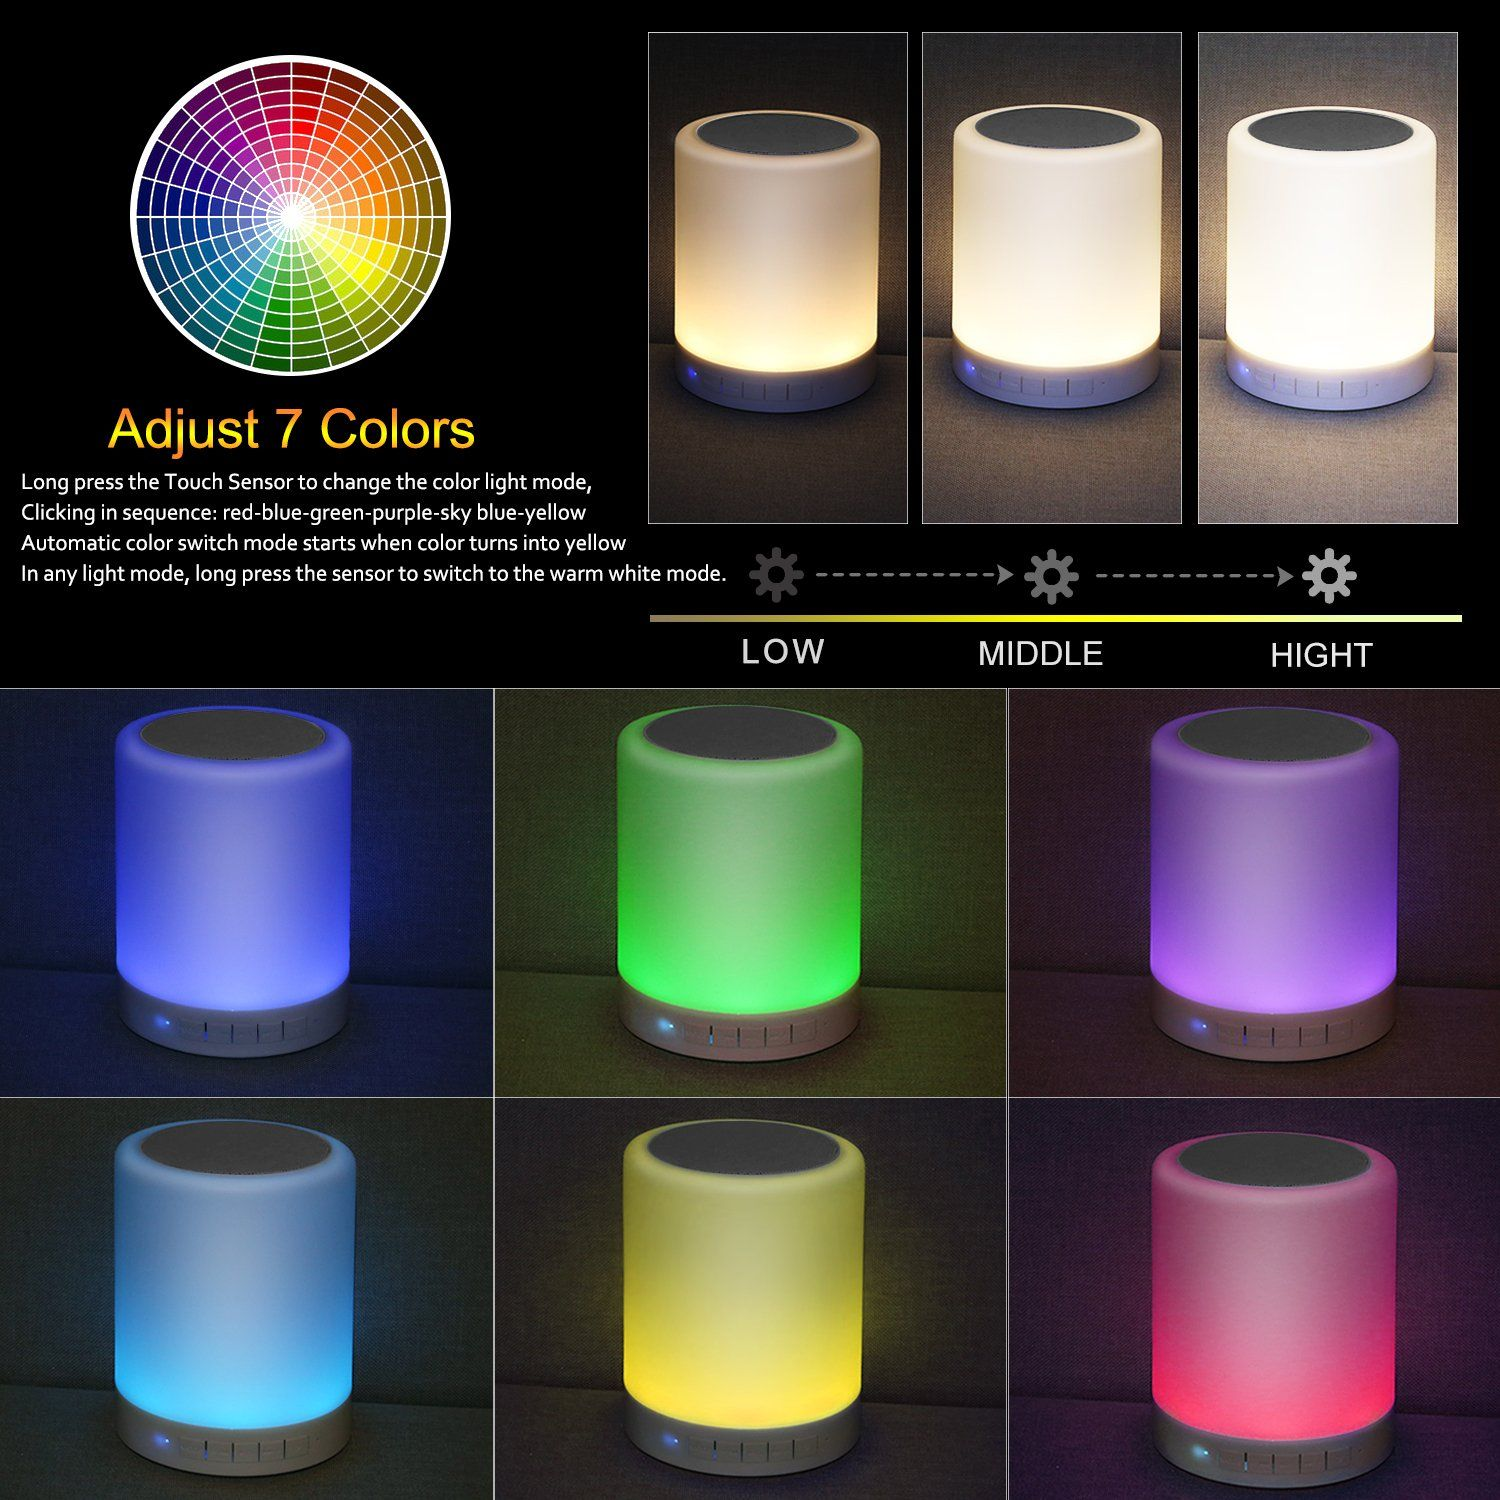 Kimfoxes Led Bluetooth Speaker Wireless Led Bedside Lamp With Touch Control Dimmable Table Lamp Outdoor Portable Handsfree C Light Music Touch Lamp Night Light